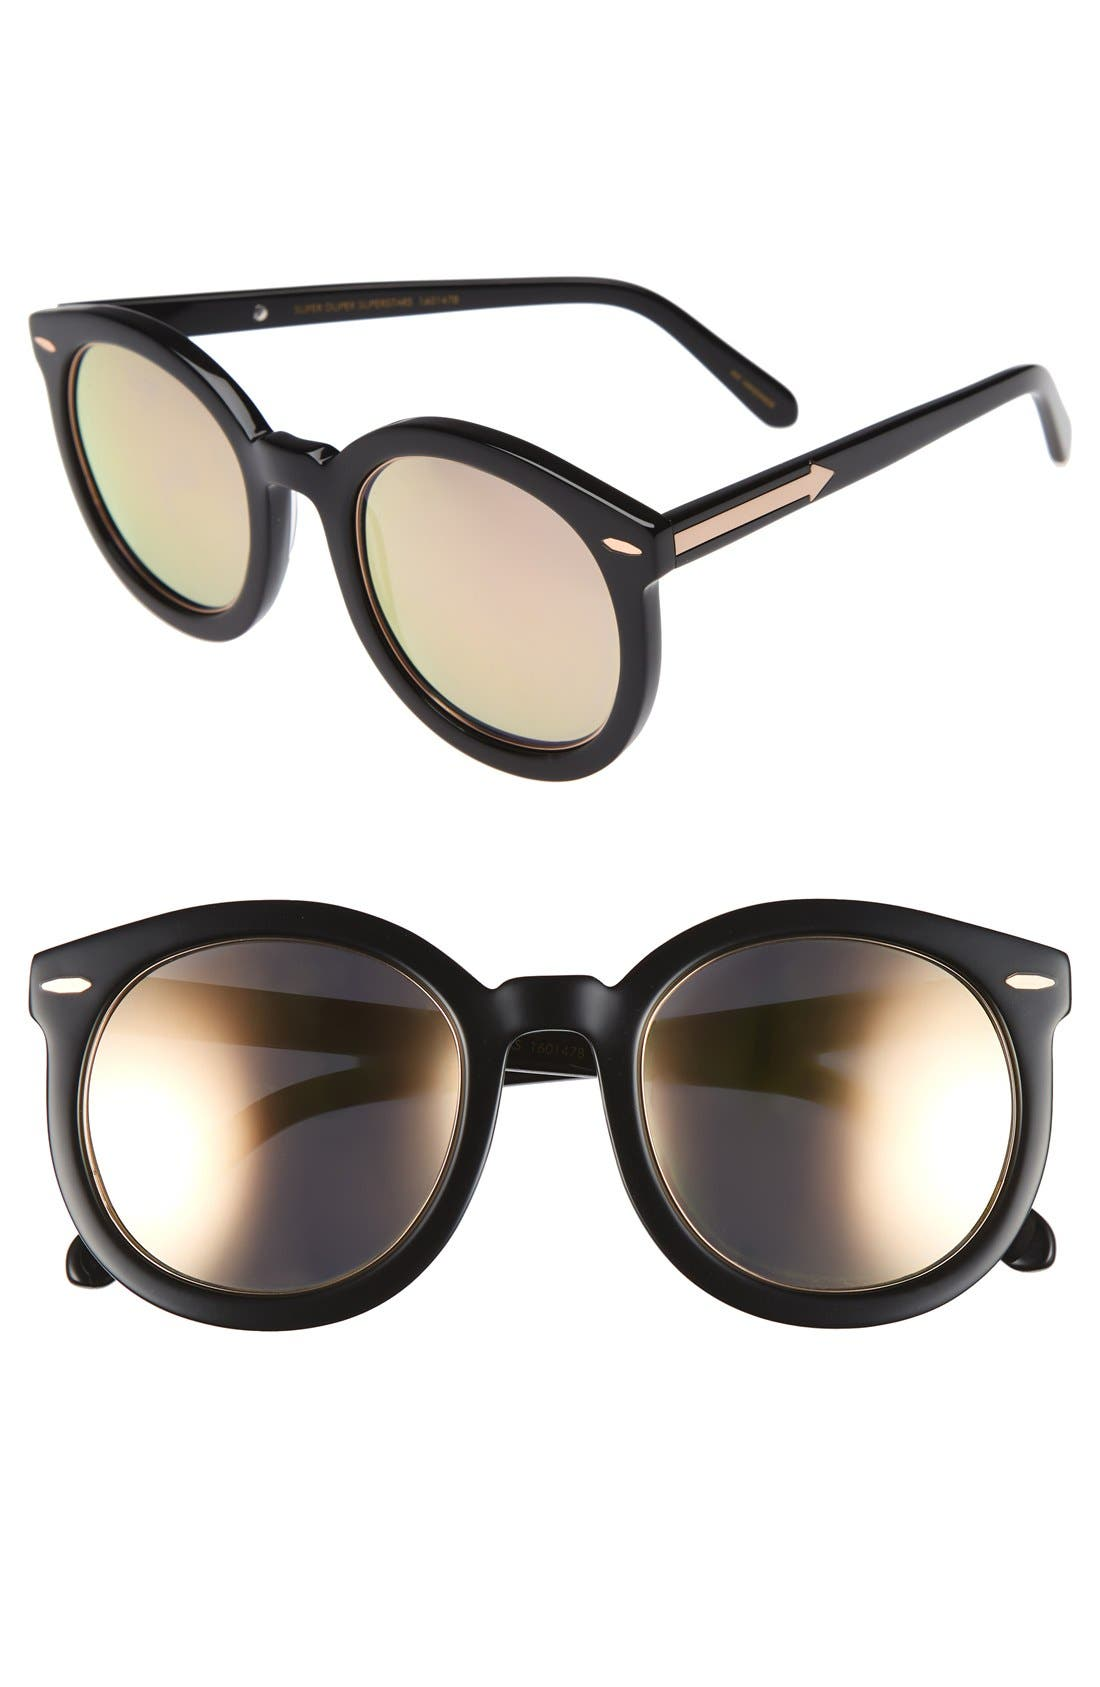 Karen Walker 'Super Duper Superstars' 53mm Sunglasses